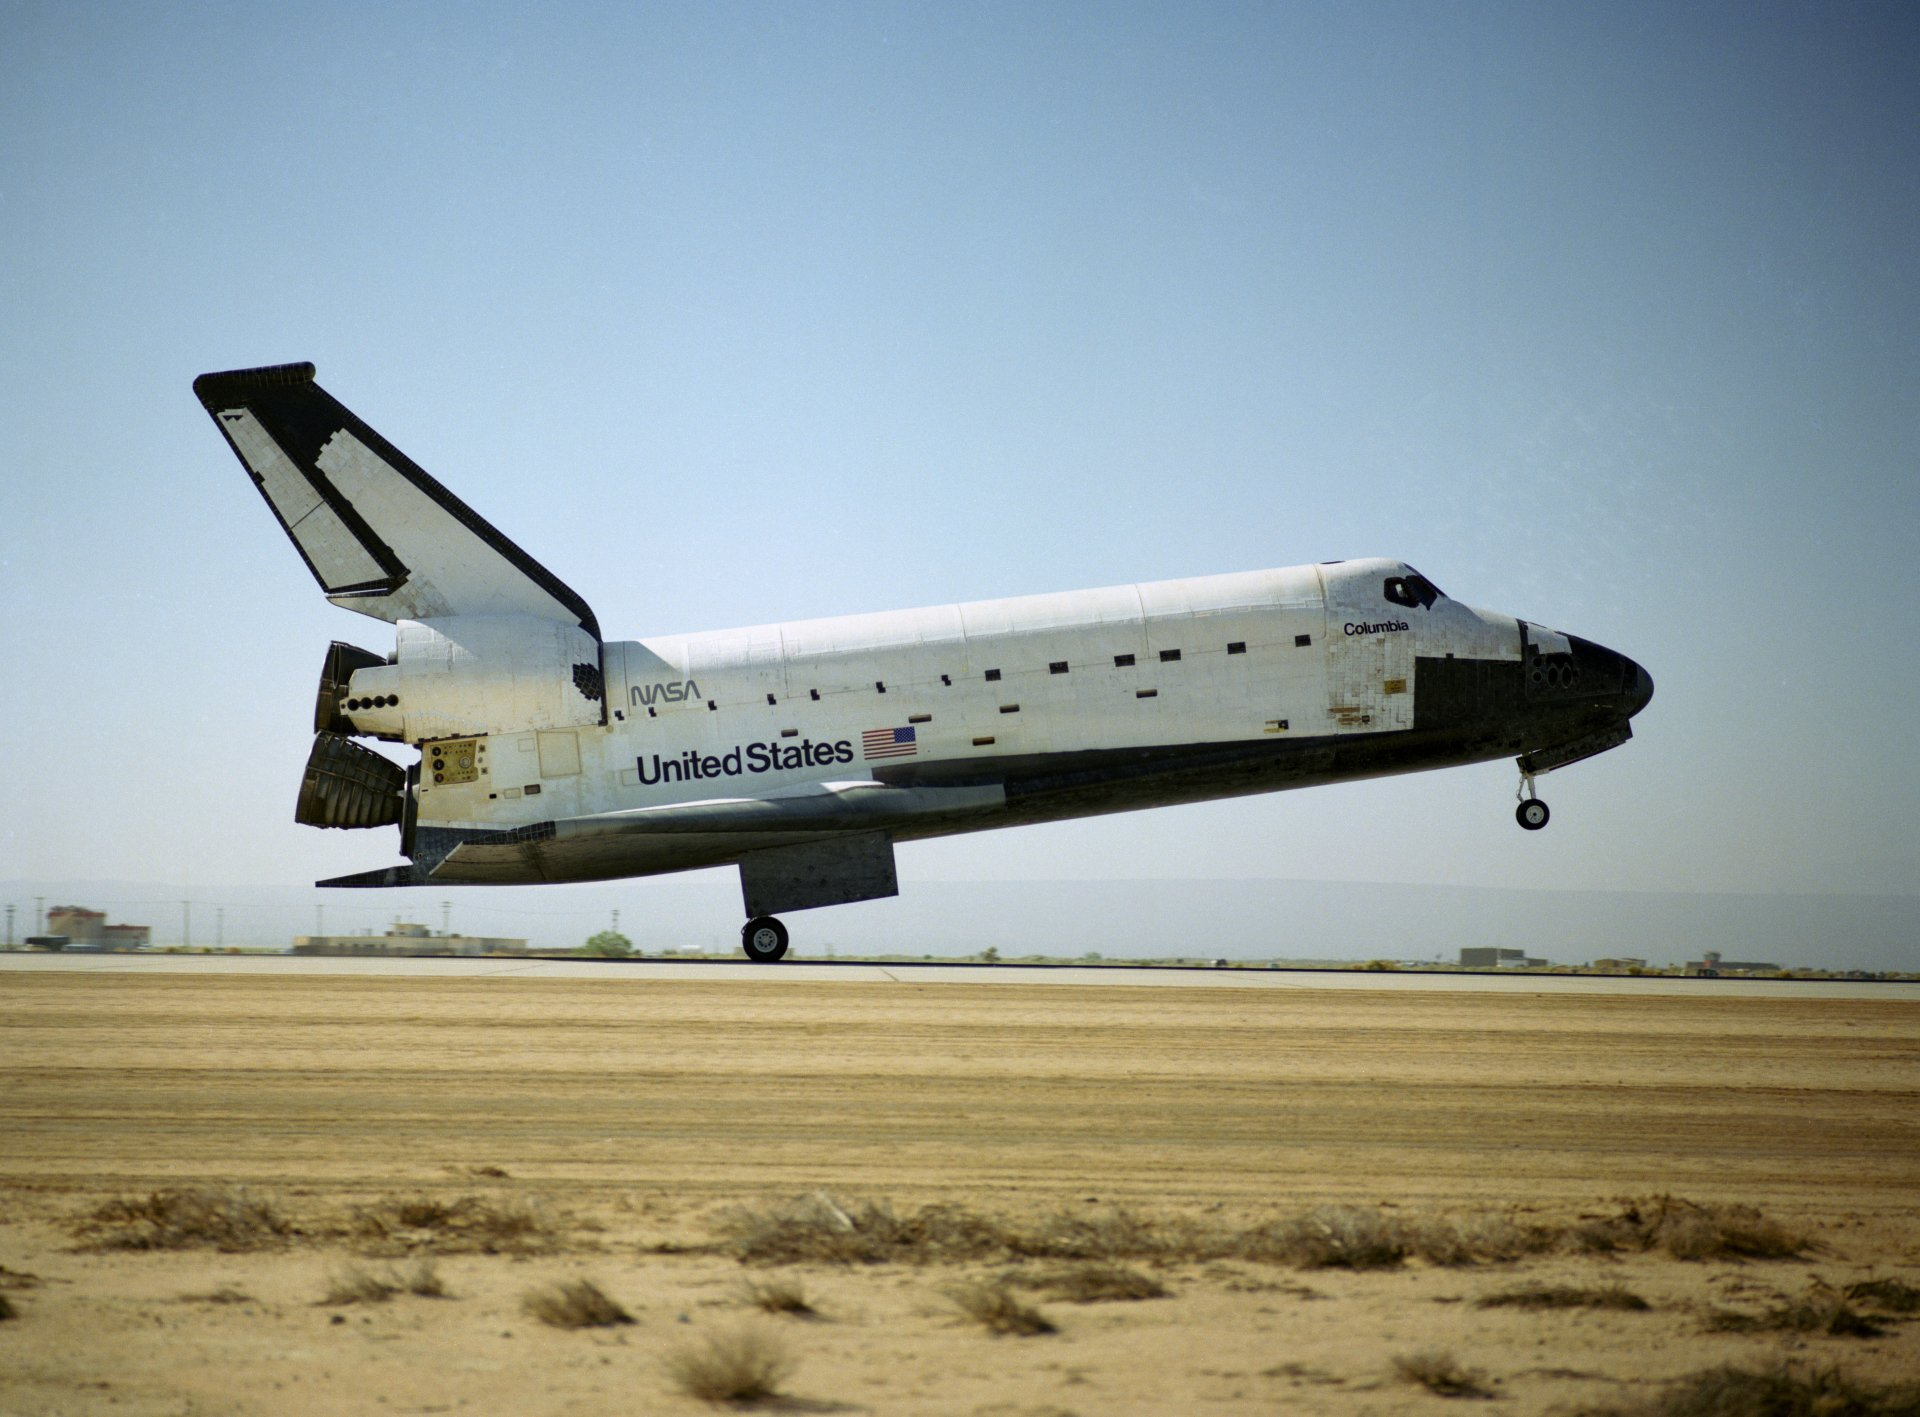 space shuttle columbia images - photo #38